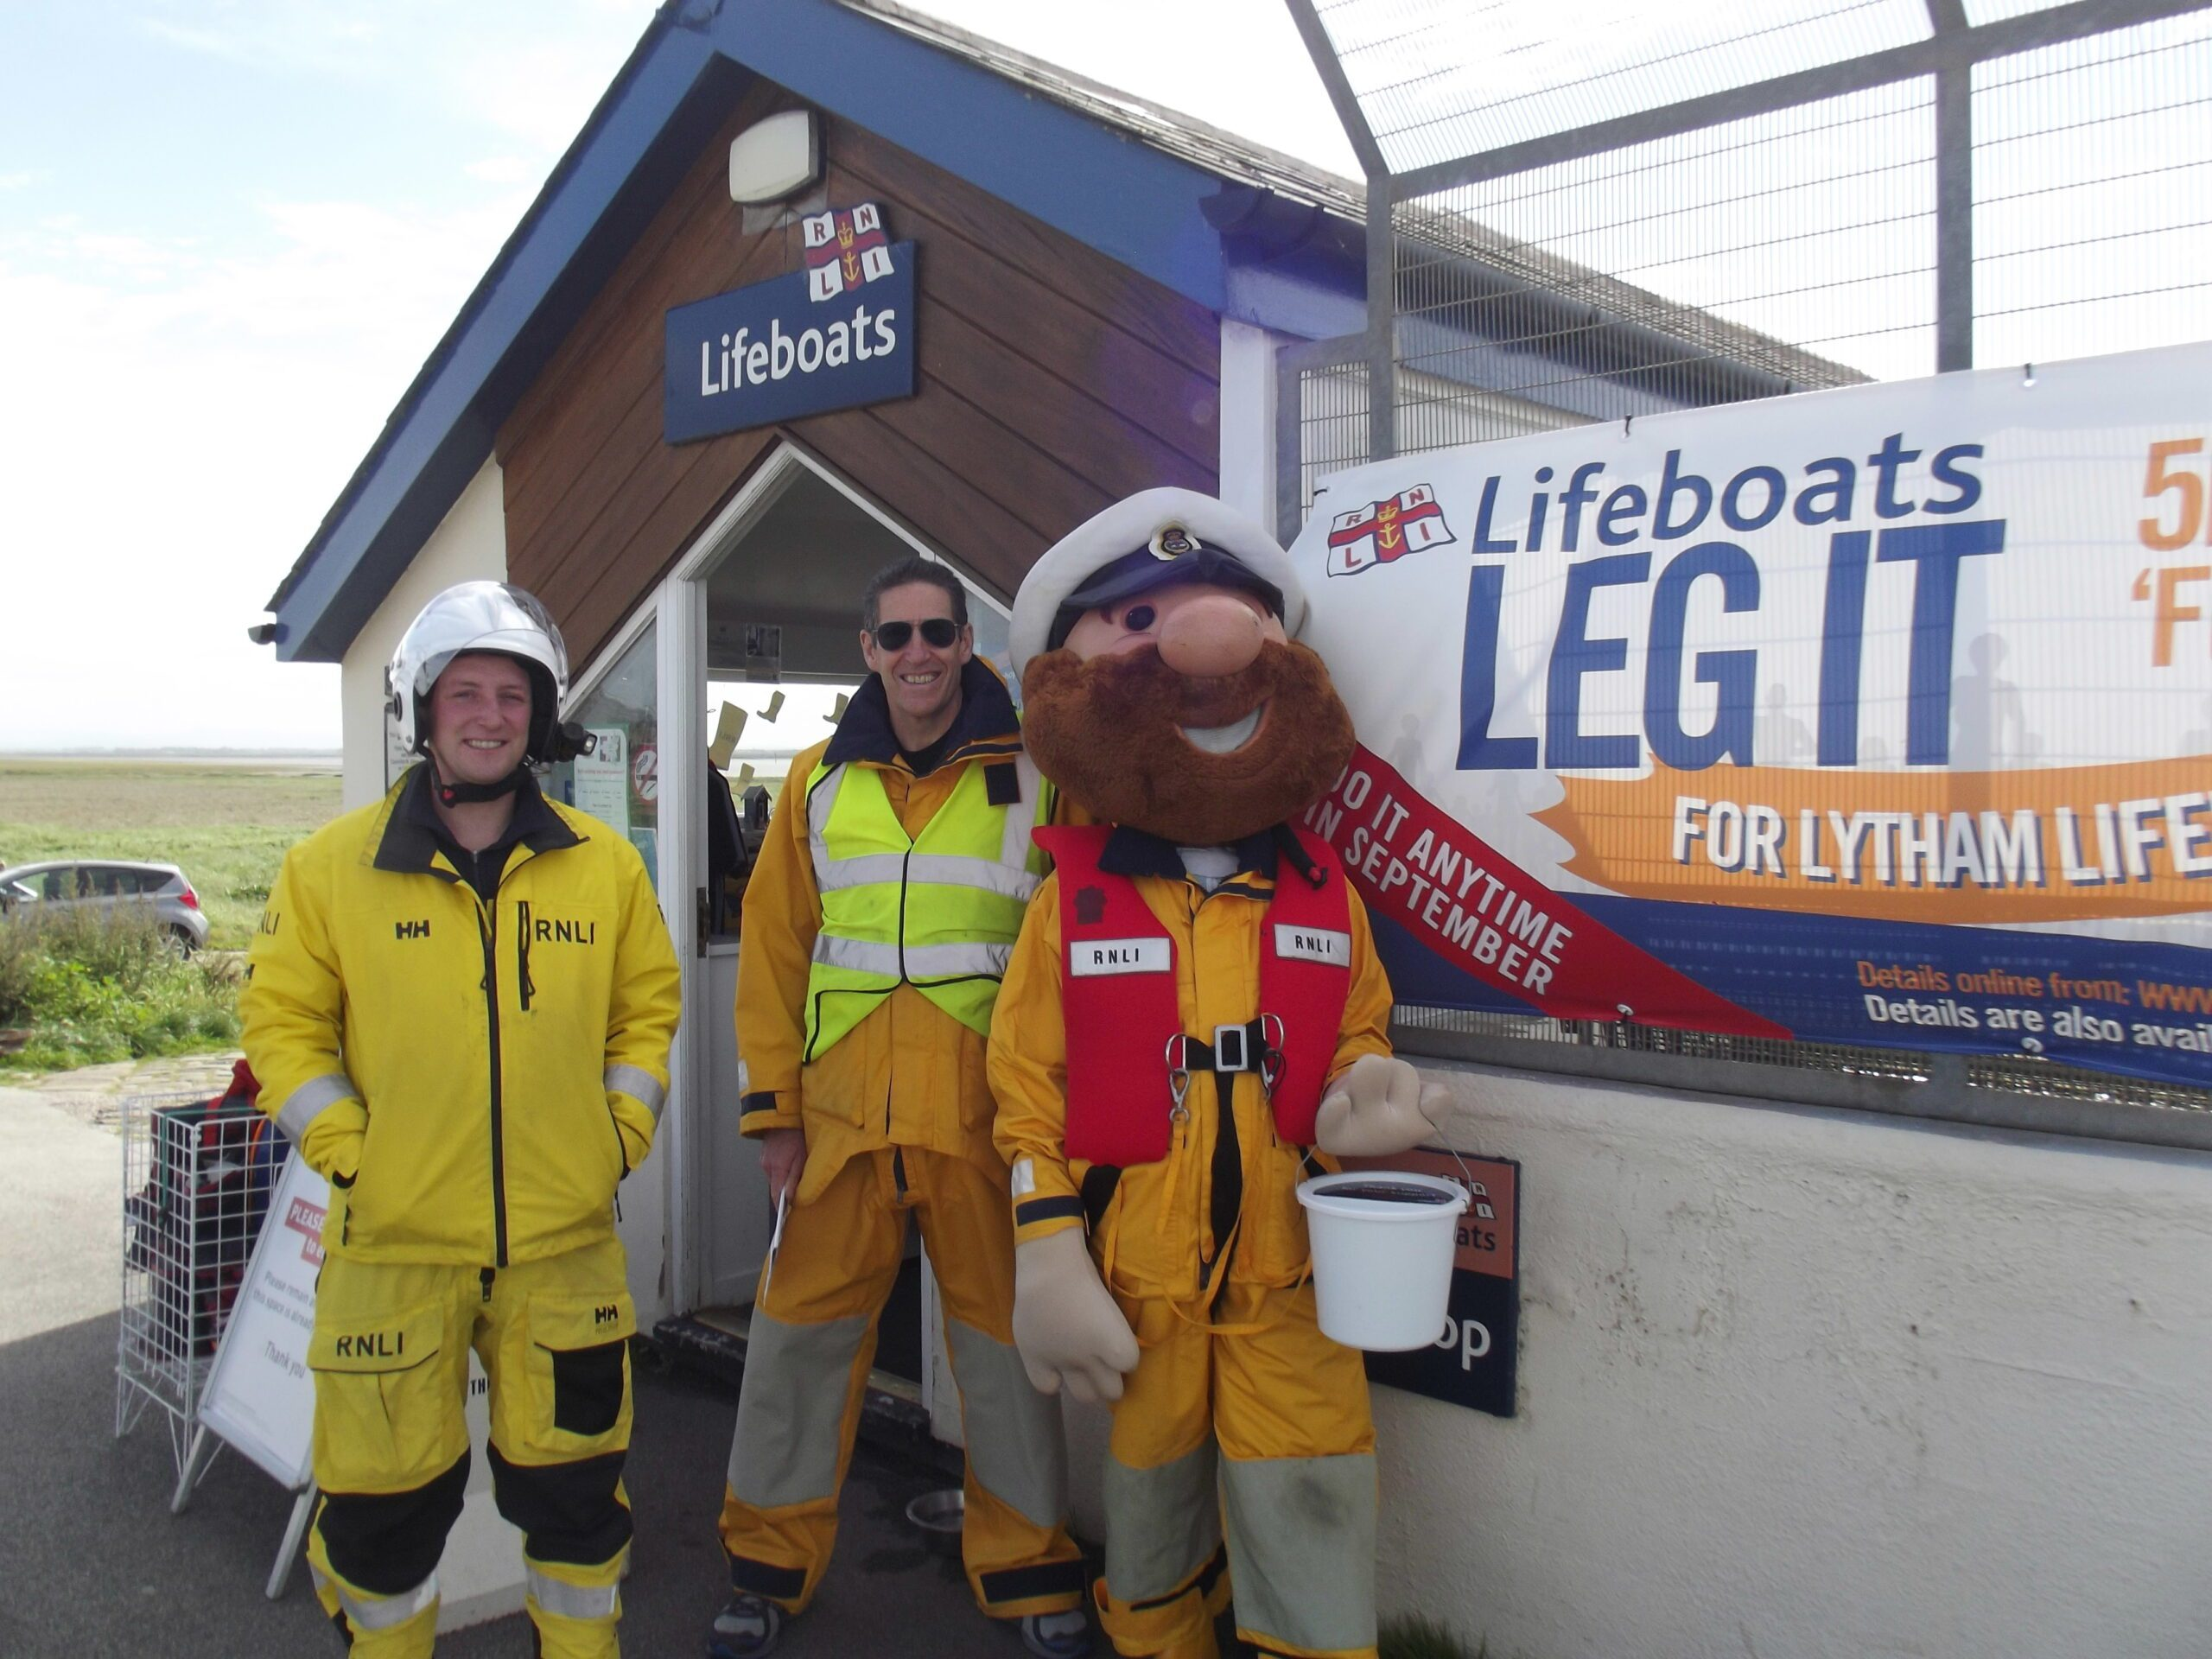 Leg it for Lytham St Annes Lifeboats